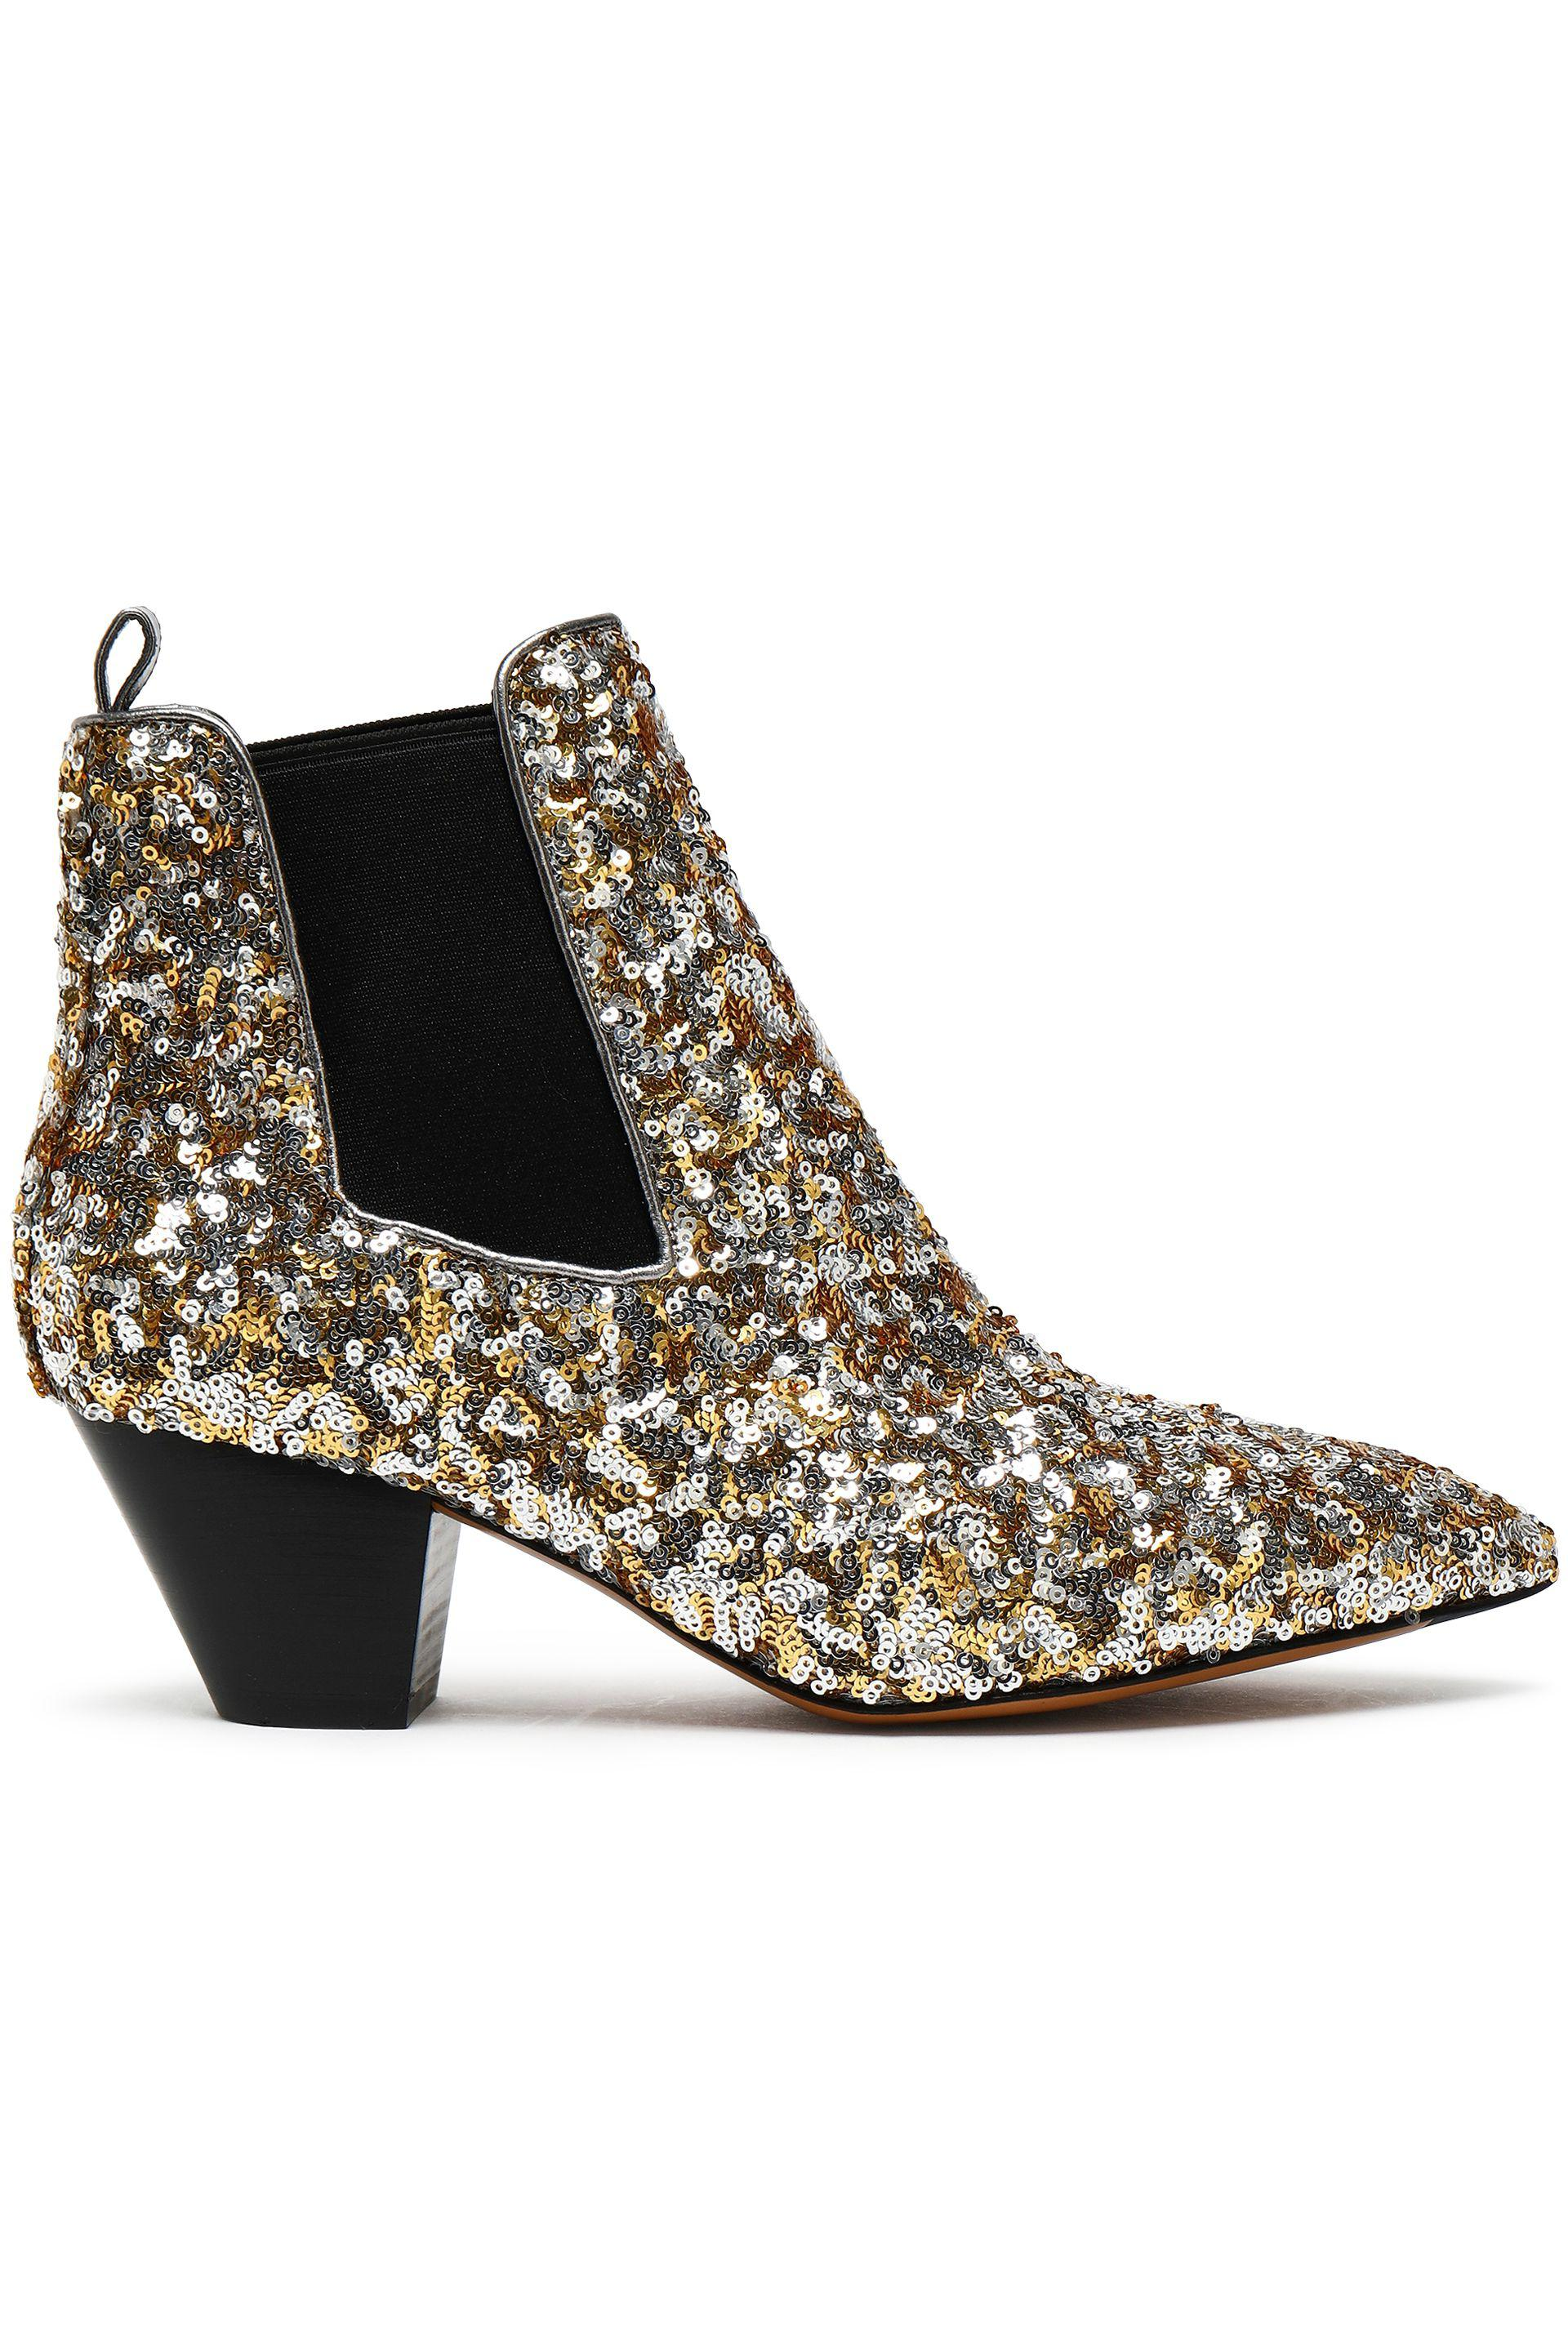 eae60519c Marc Jacobs Woman Sequined Woven Ankle Boots Silver Size 40 in ...